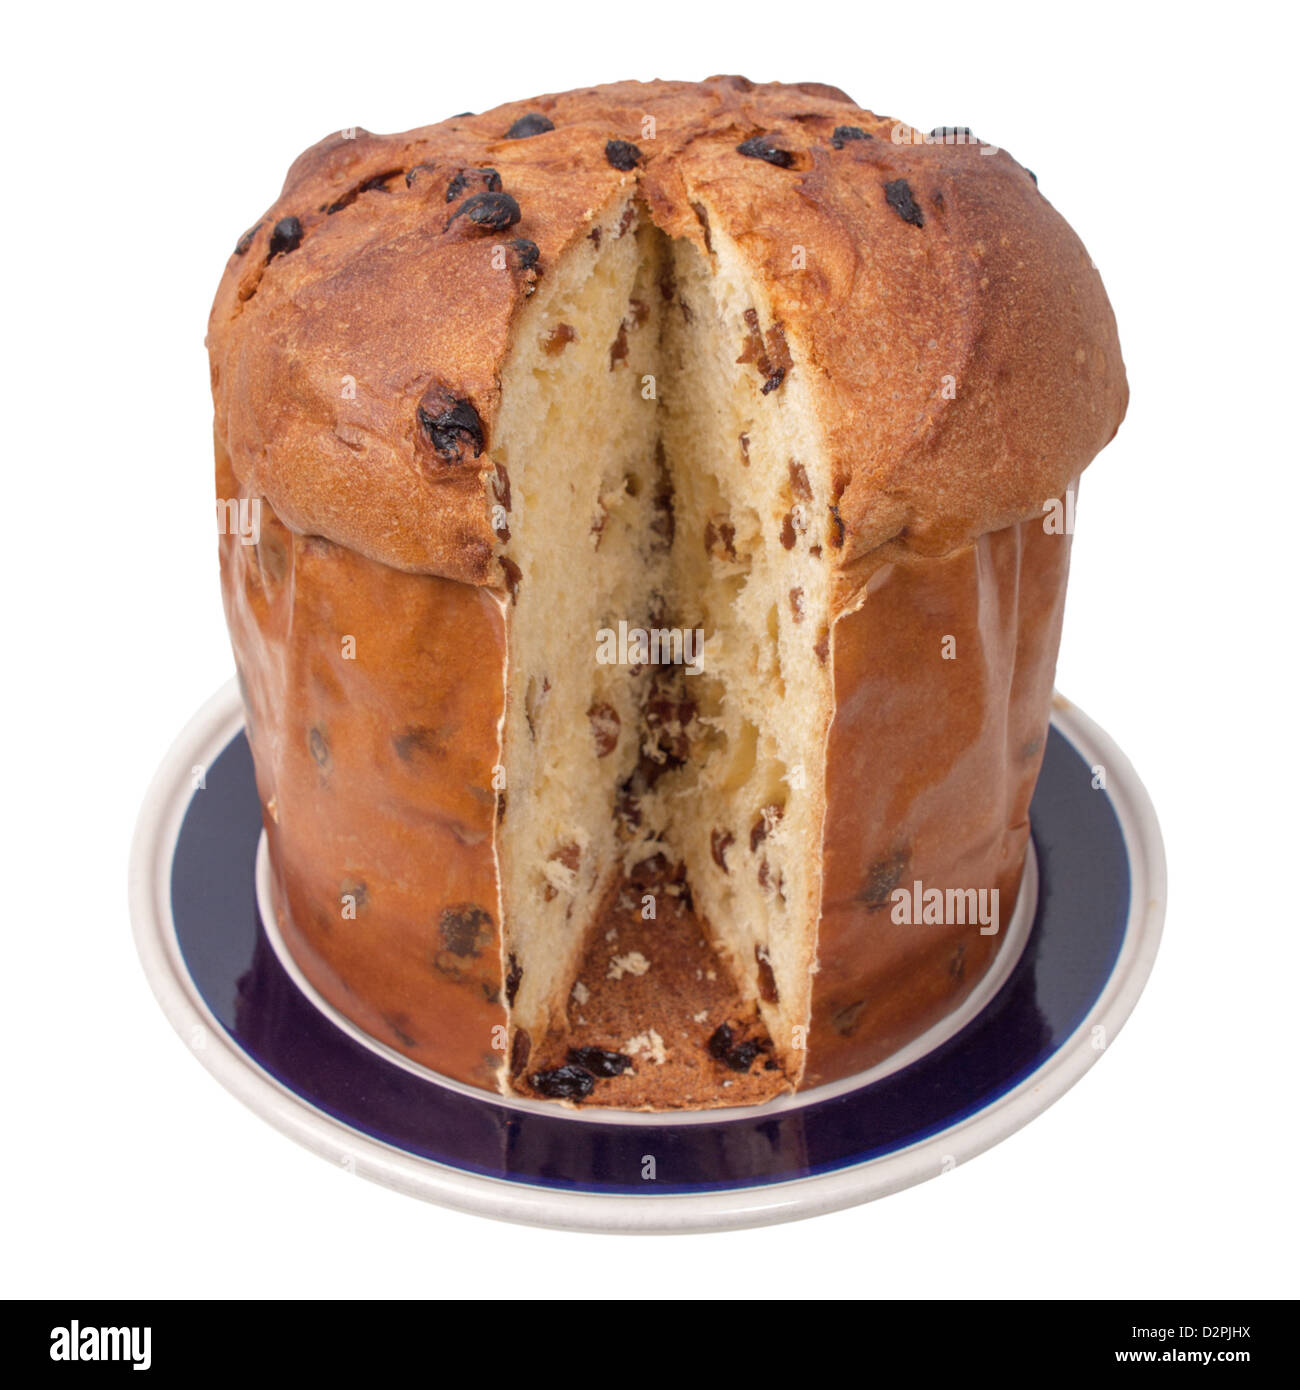 Panettone - Christmas sweet bread loaf from Milan in Italy - isolated over white background - Stock Image